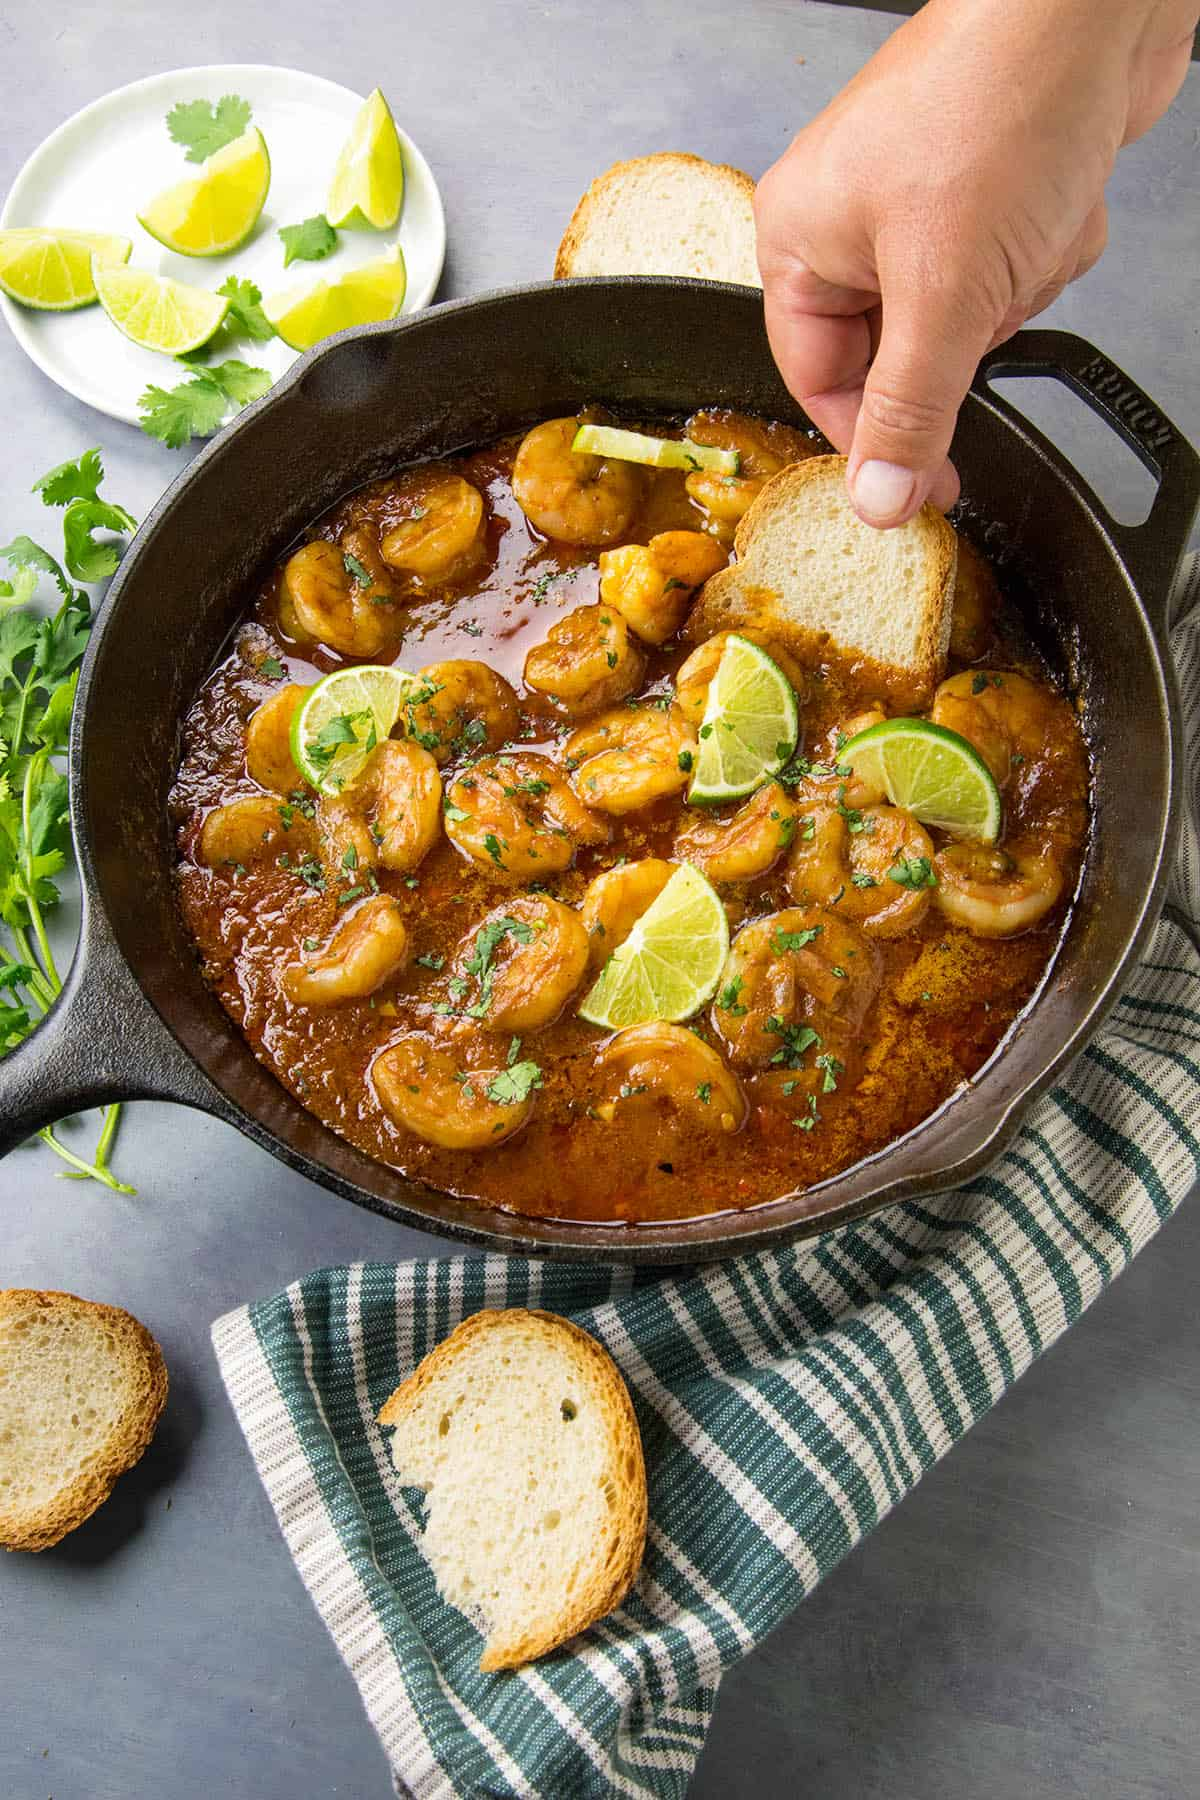 Dipping crusty bread into my Shrimp in Fiery Chipotle-Tequila Sauce to sop up the sauce